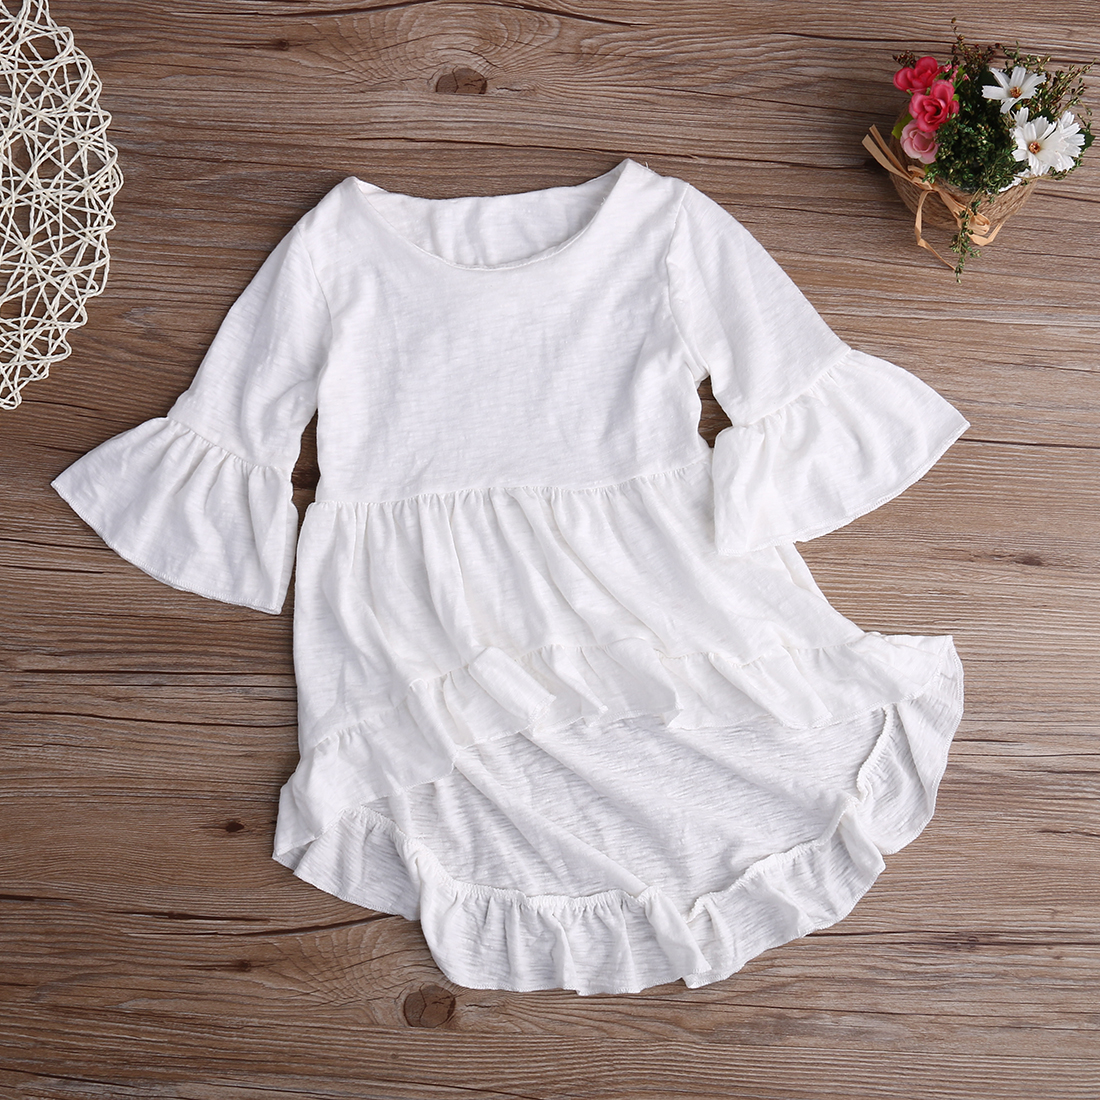 White Baby Girls Dress Frills Flare Sleeve Top T-Shirt Party Ruffles Hem Dresses 1-6Y mixed print dip hem top